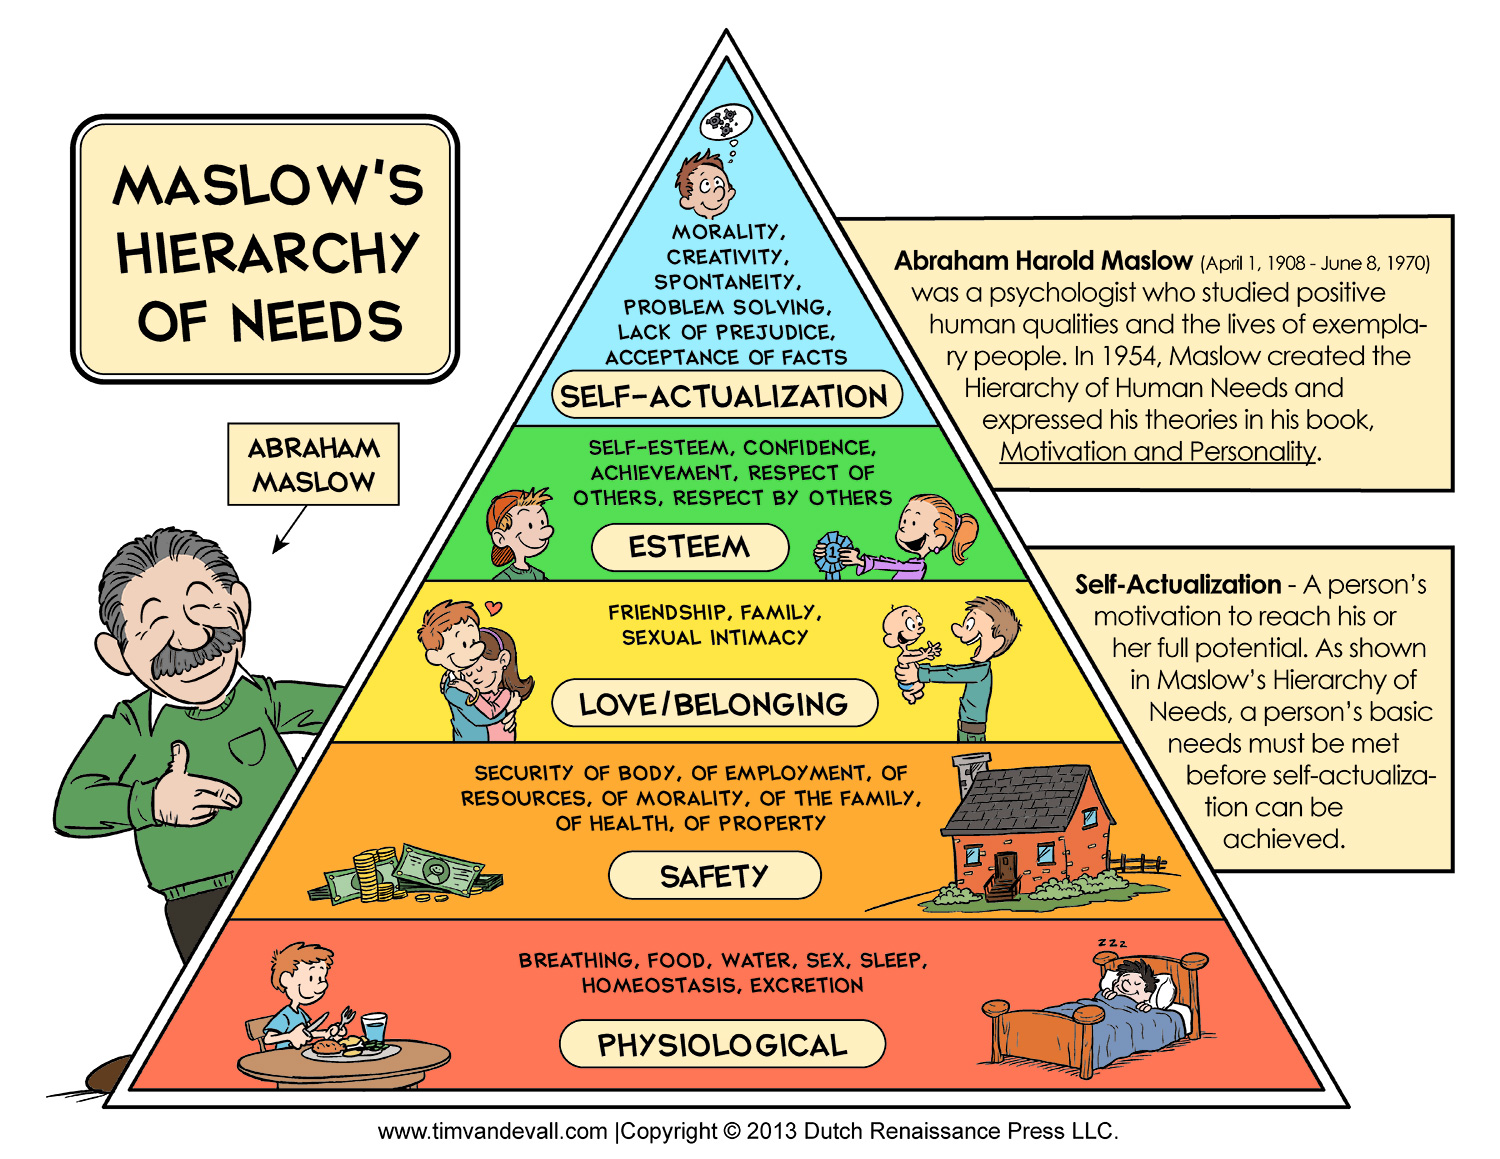 [Image: Maslows-Hierarchy-of-Needs-730816.jpg]